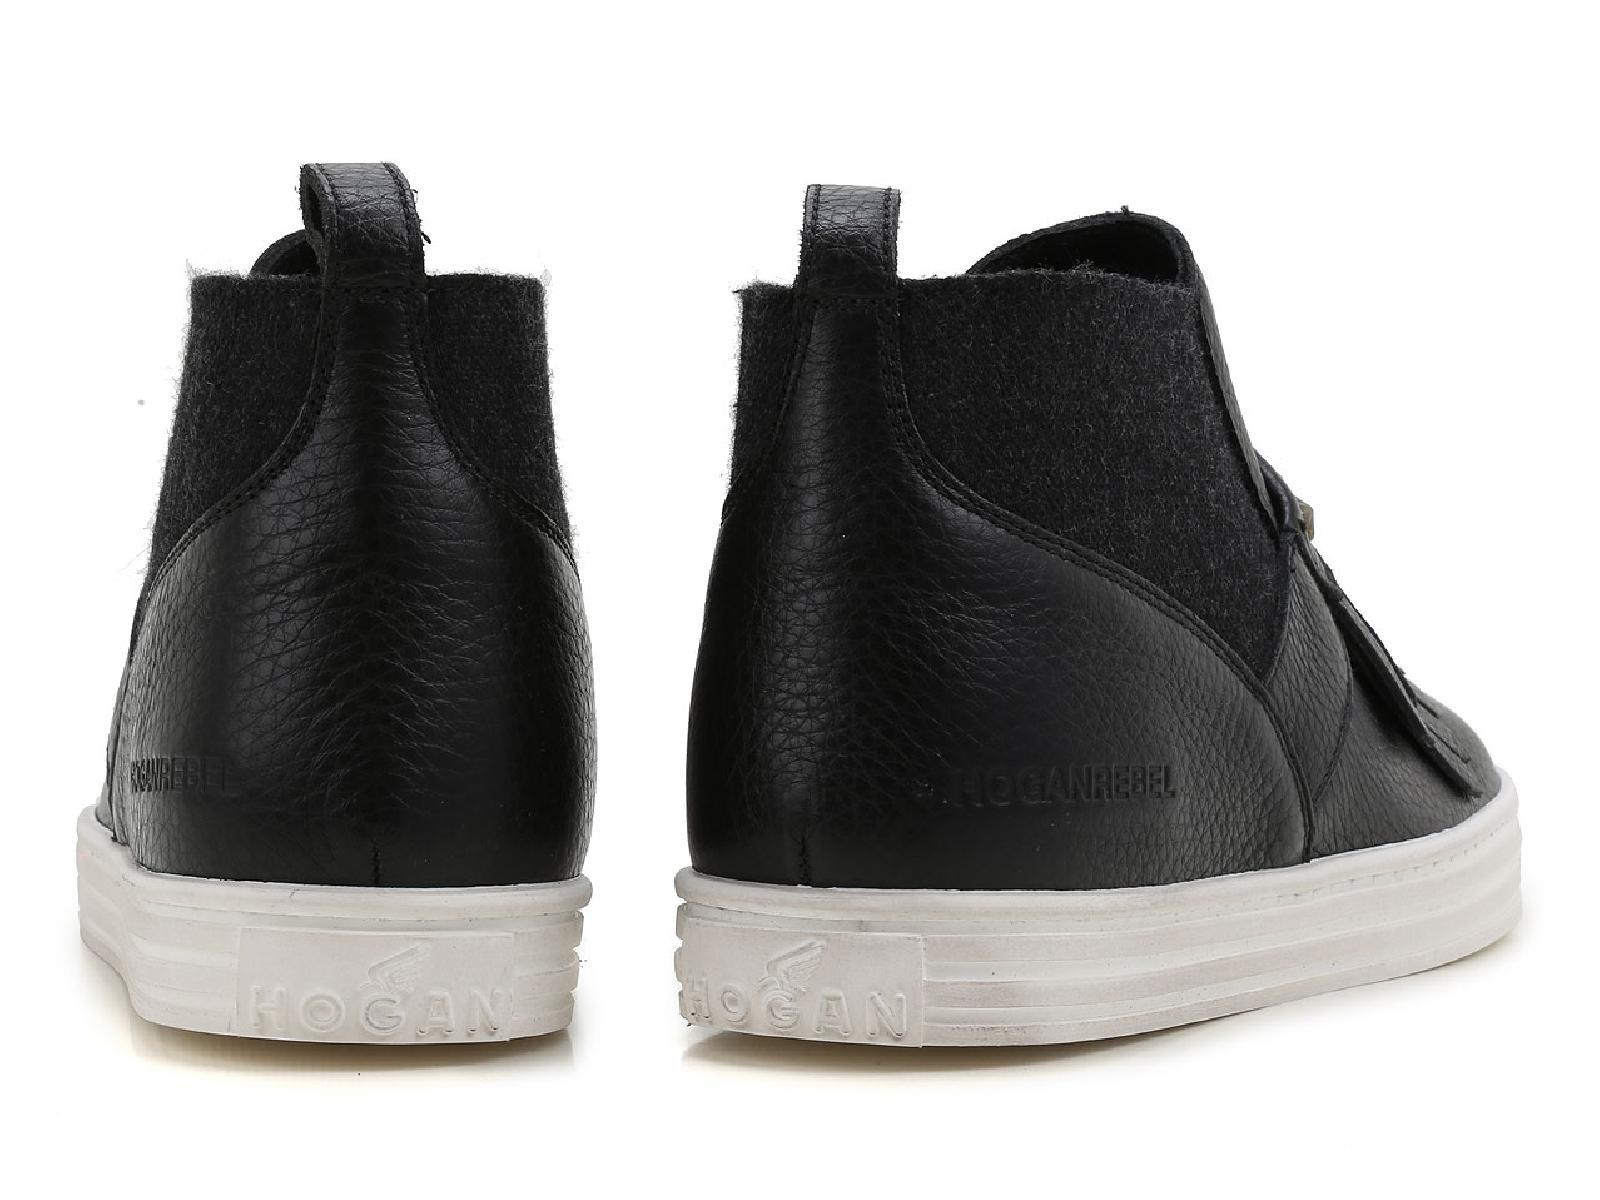 4fde6caa5c Hogan women's slip-ons ankle boots high top sneakers black leather ...